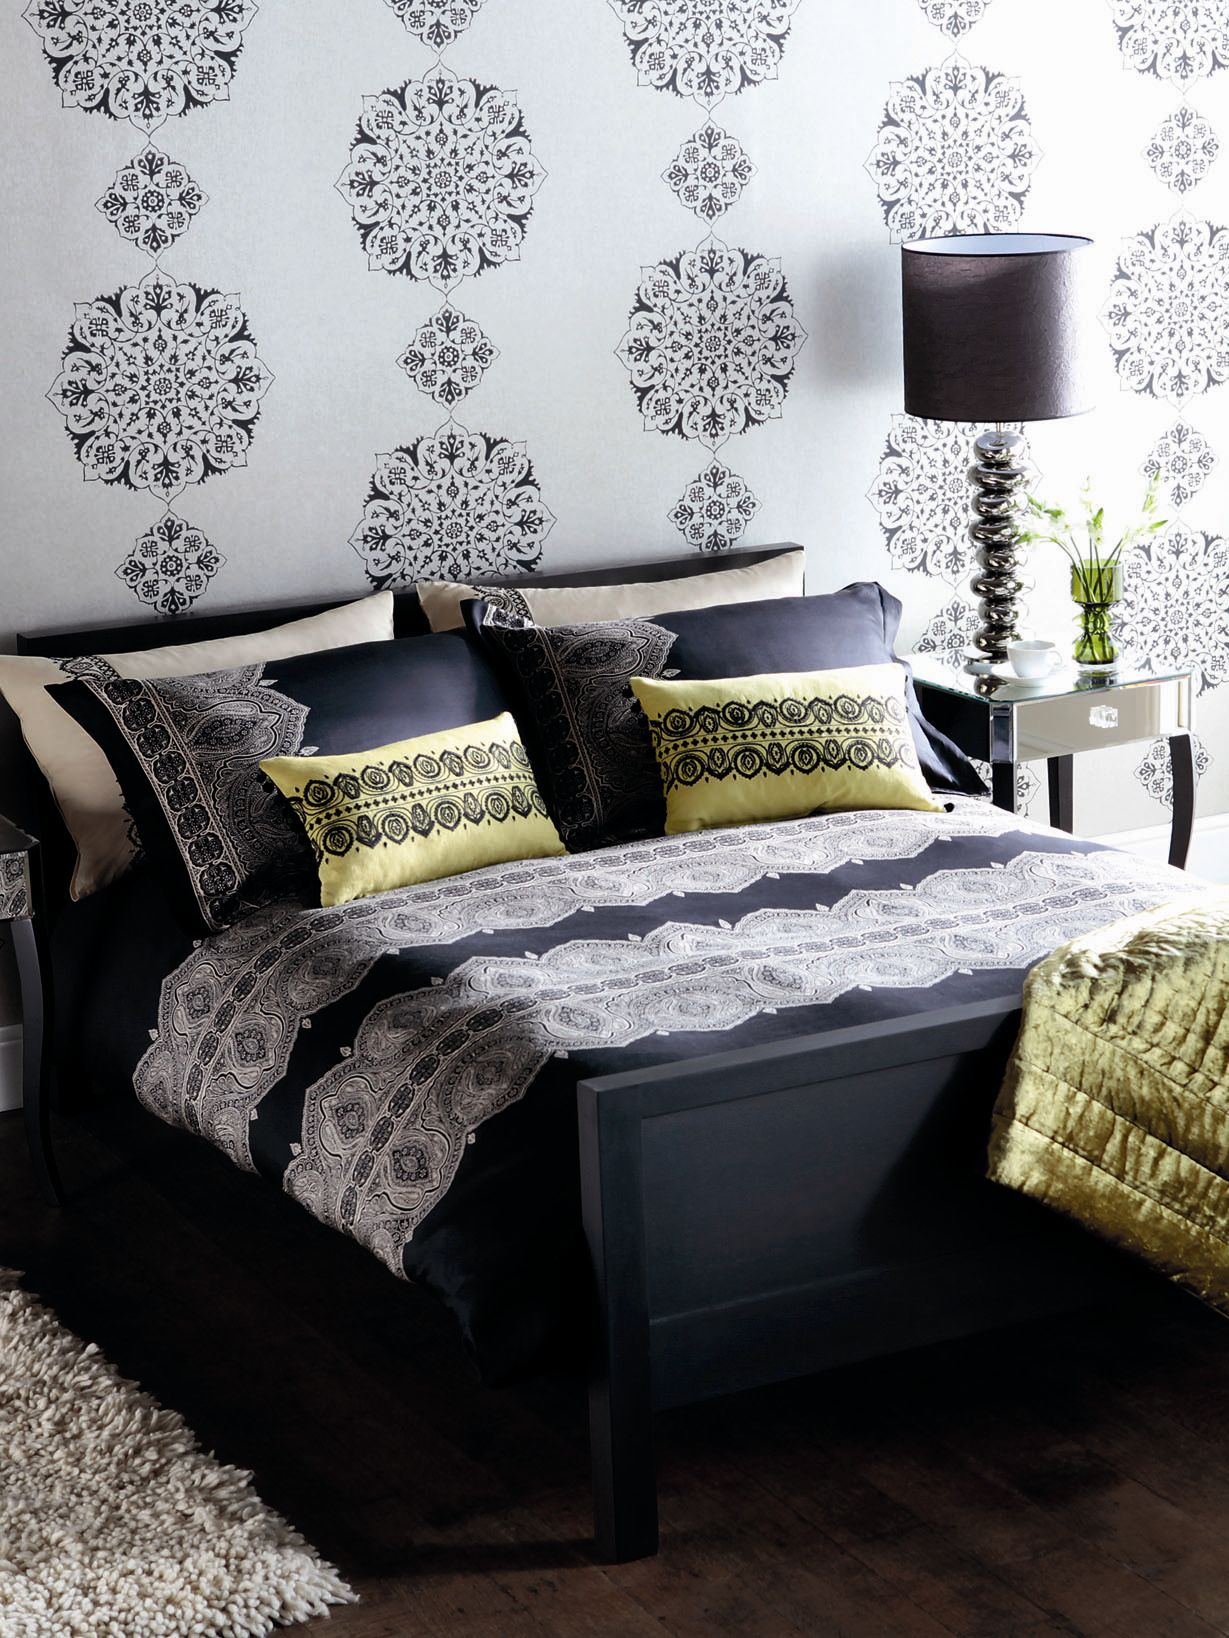 Azara bed linen range in black